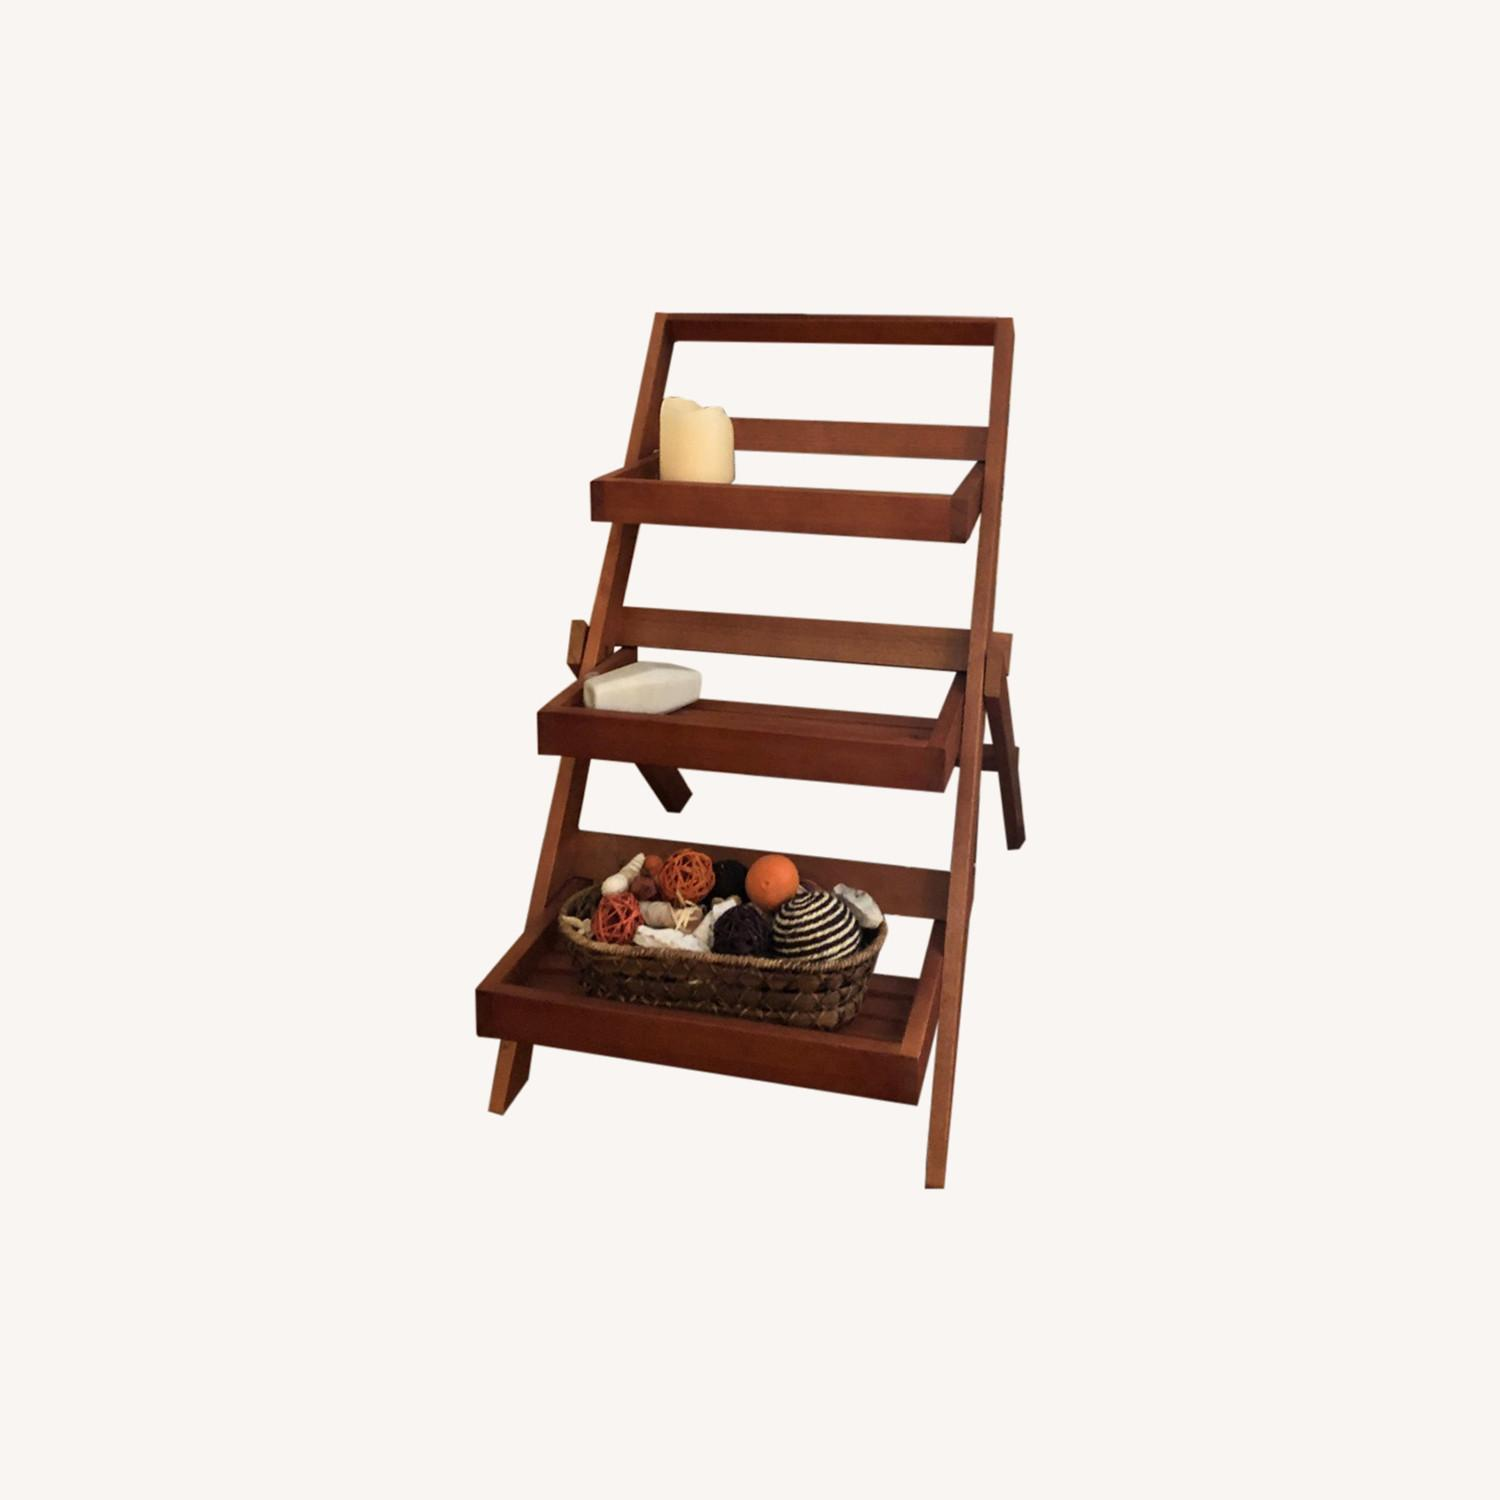 Pier 1 Imports Wood 3-Tiered Plant Stand - image-0